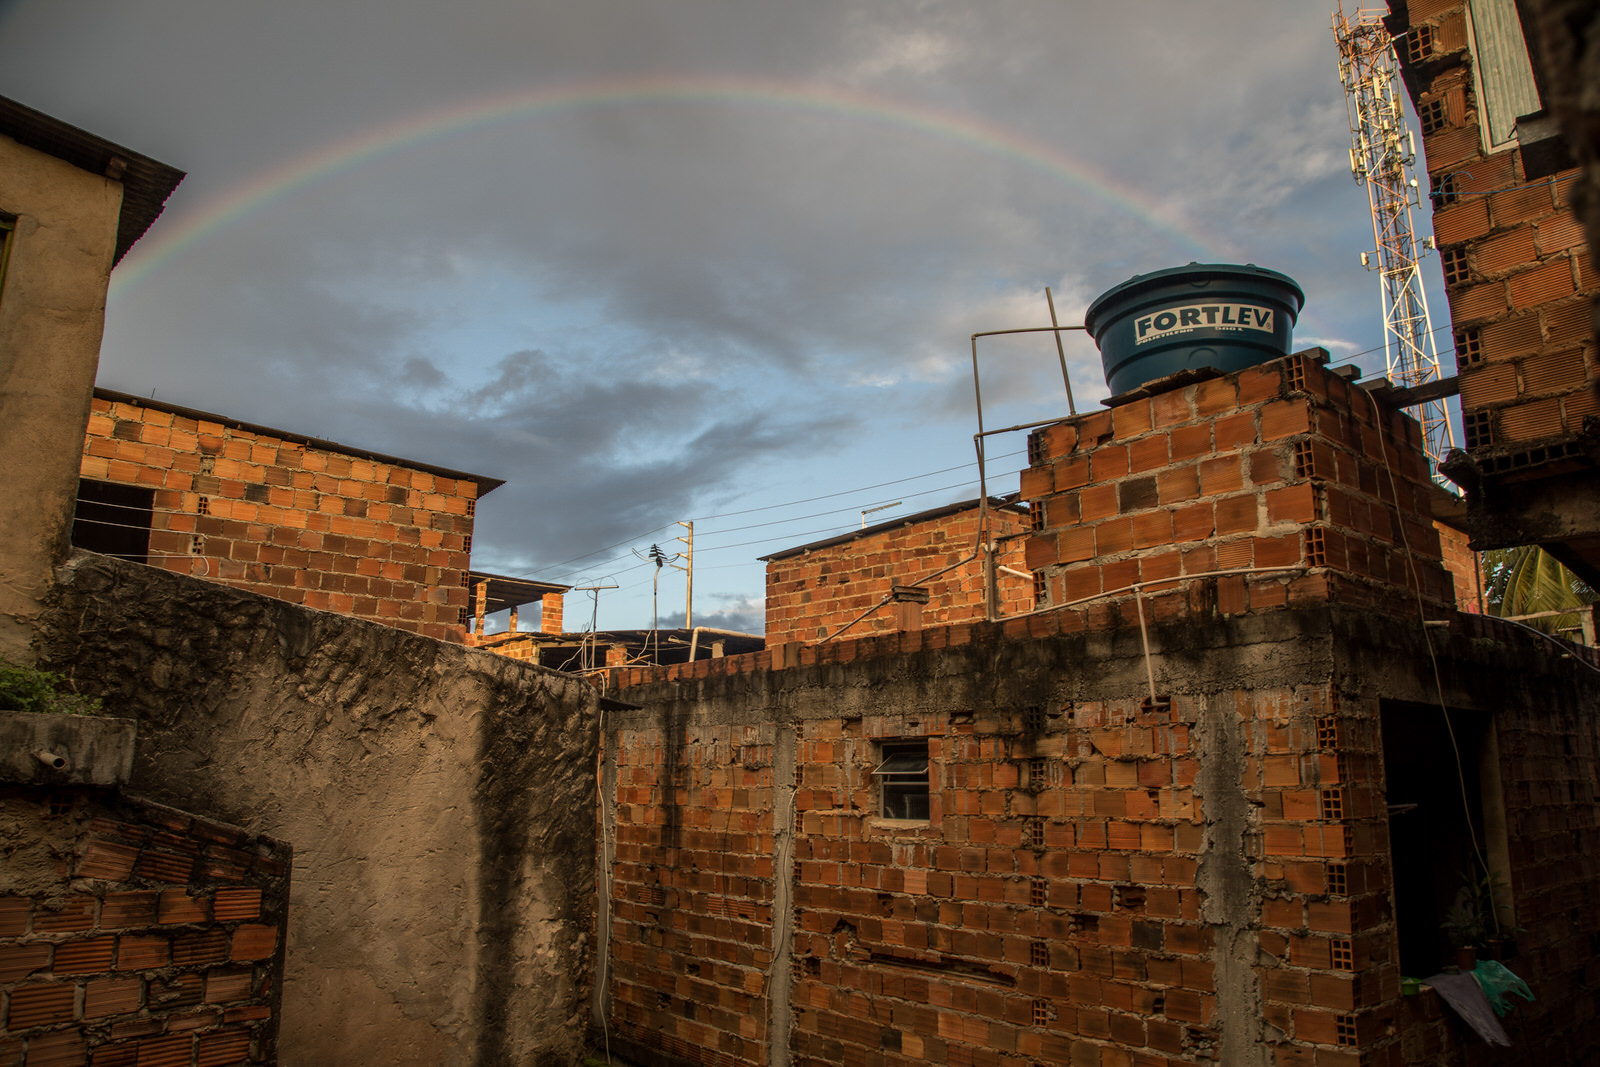 Across the city there are multiple narratives and claims for the right to the city. However, the numerous social movements and communities continue to fight for a more socially just and equitable Salvador.